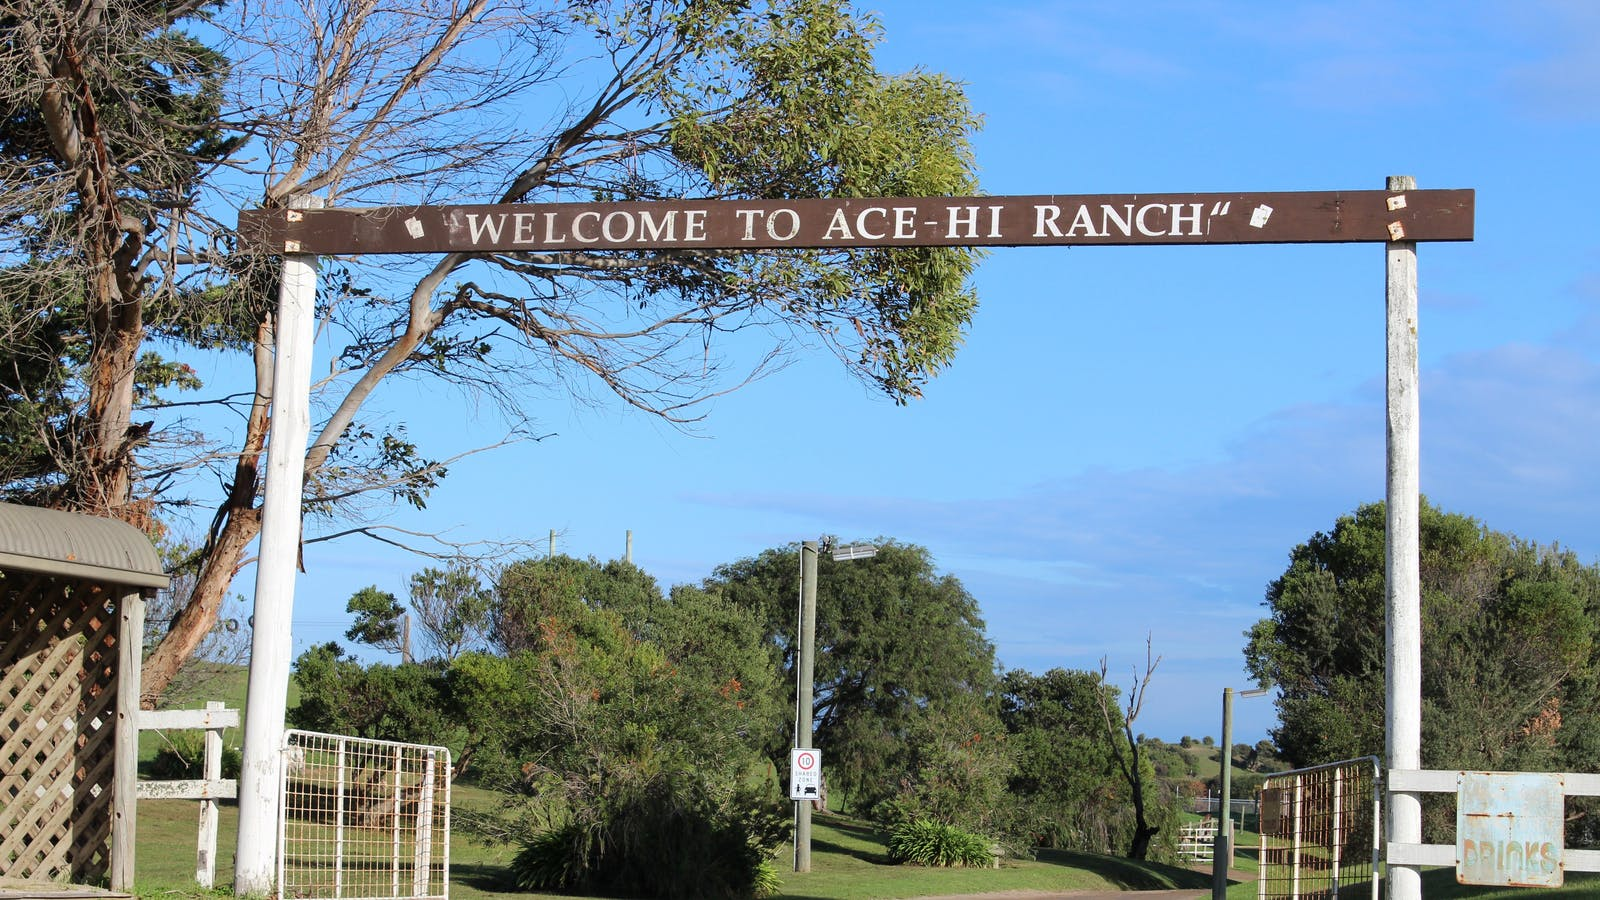 Entrance to Ace Hi Ranch